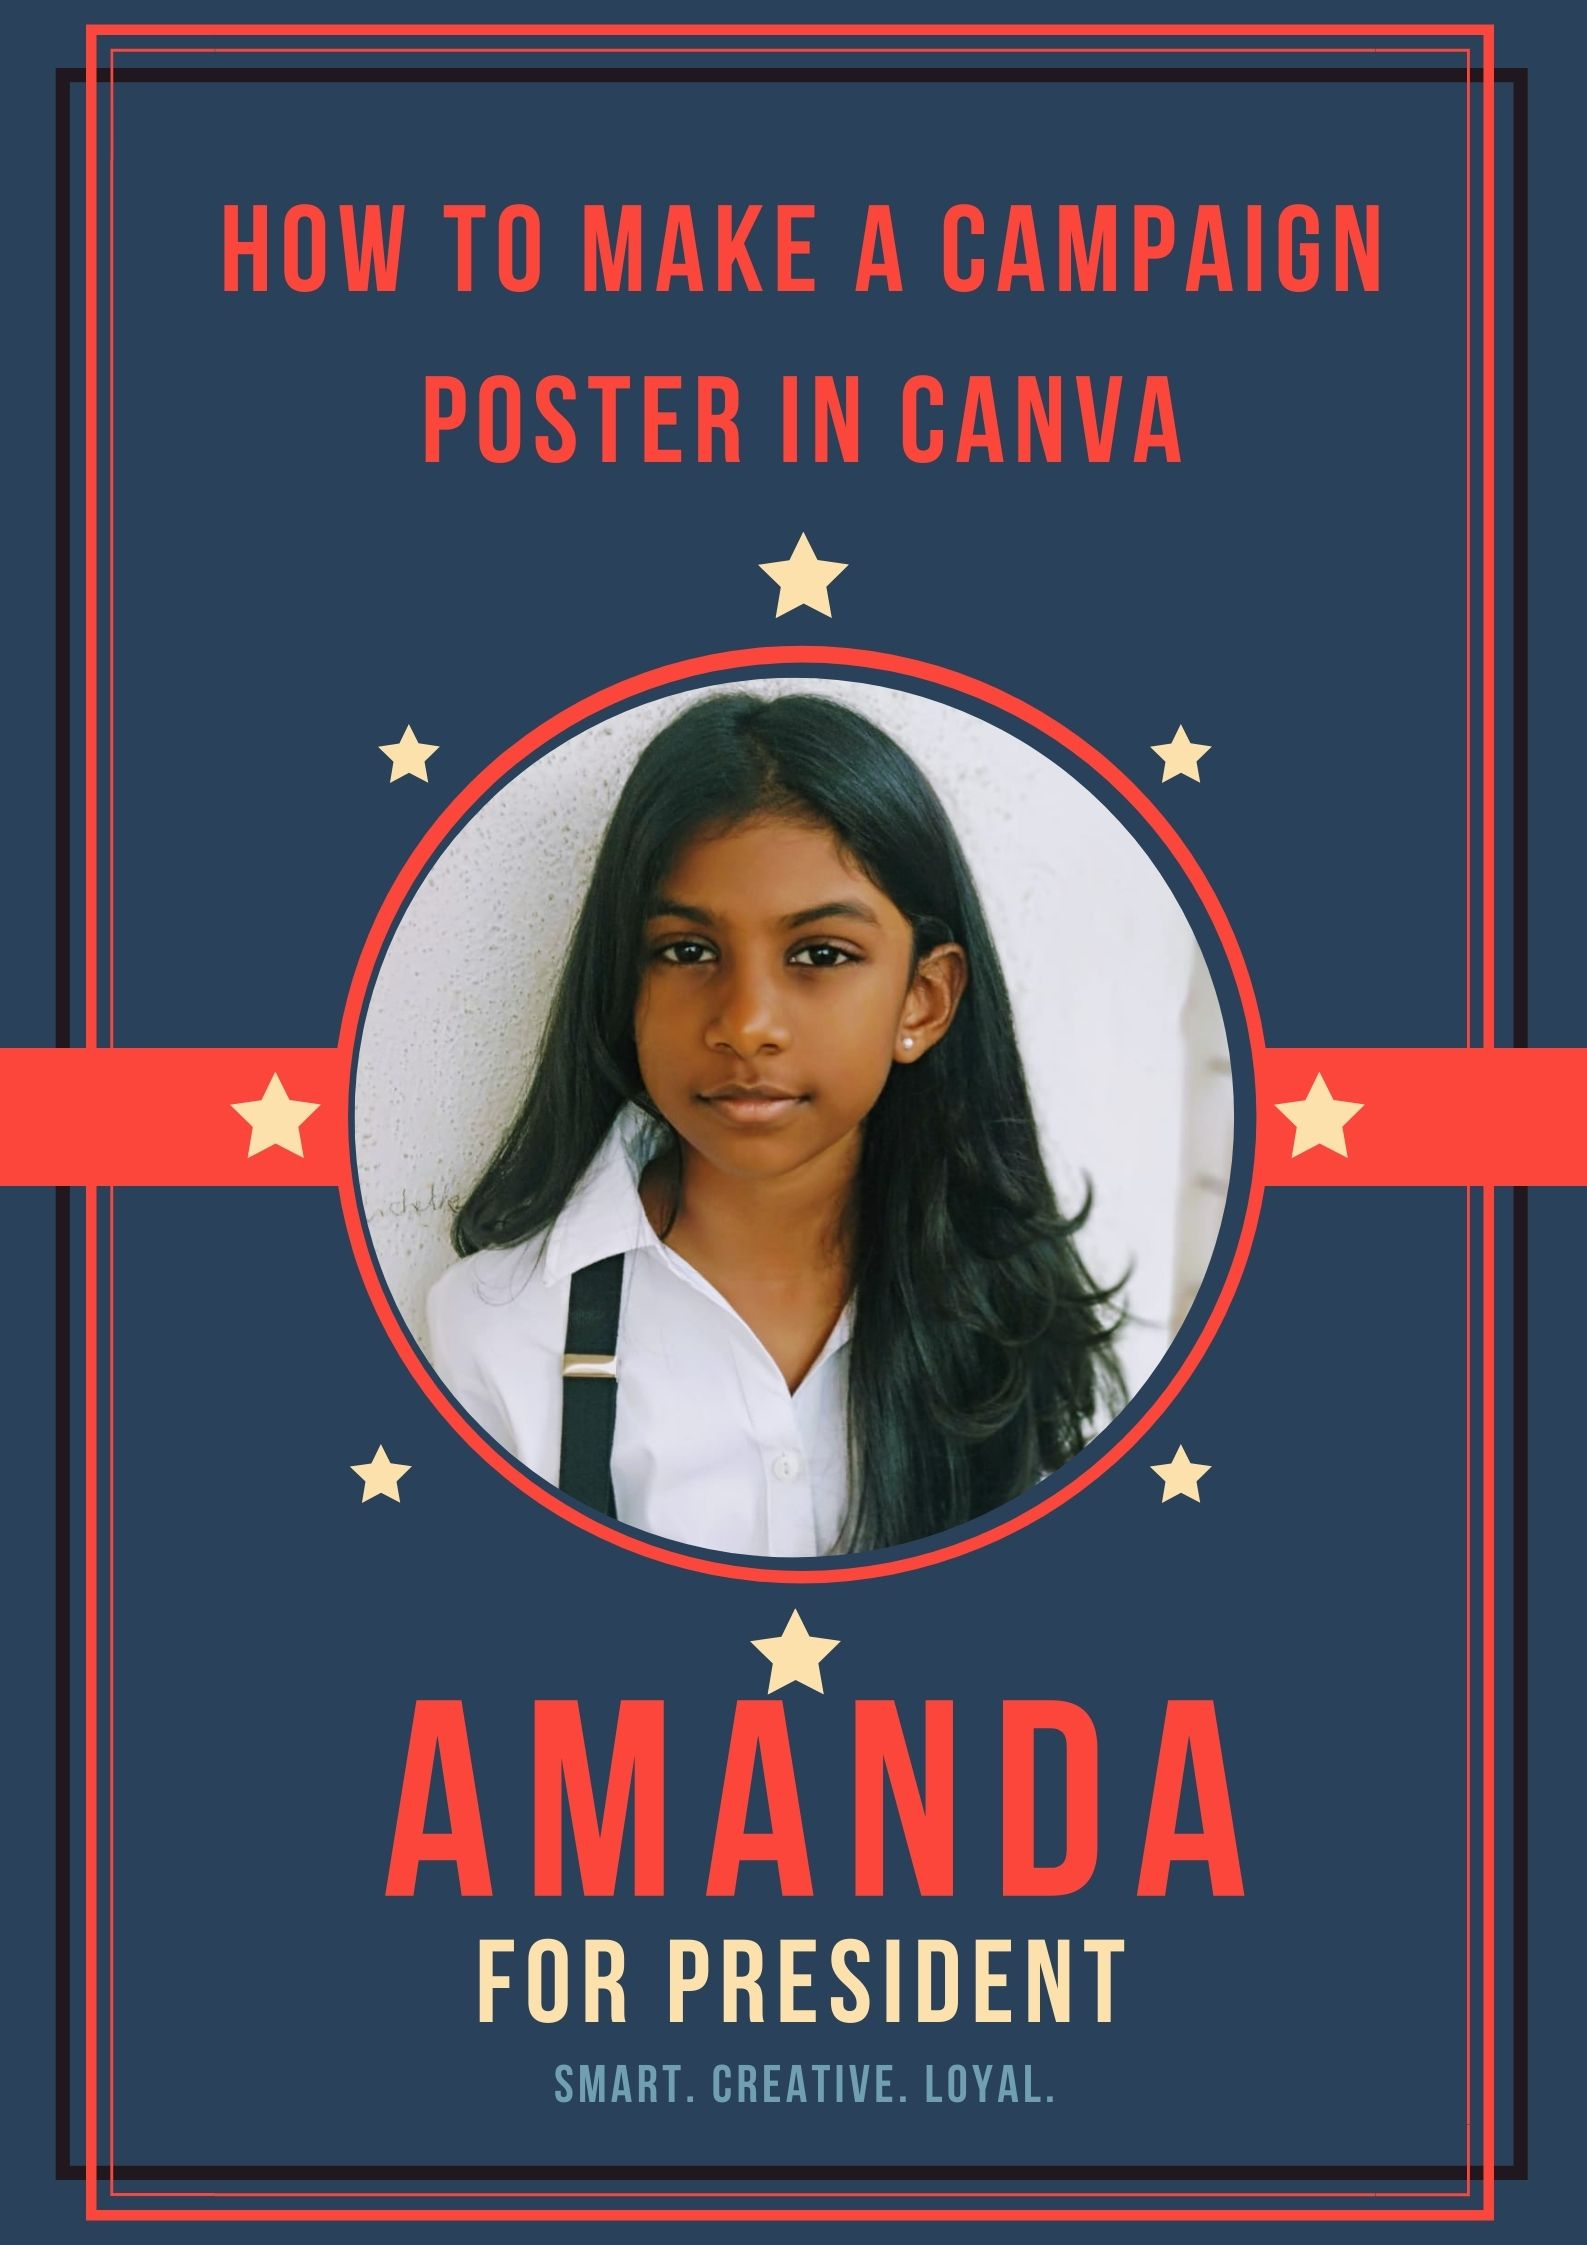 How To Make A Campaign Poster In Canva In A Minute